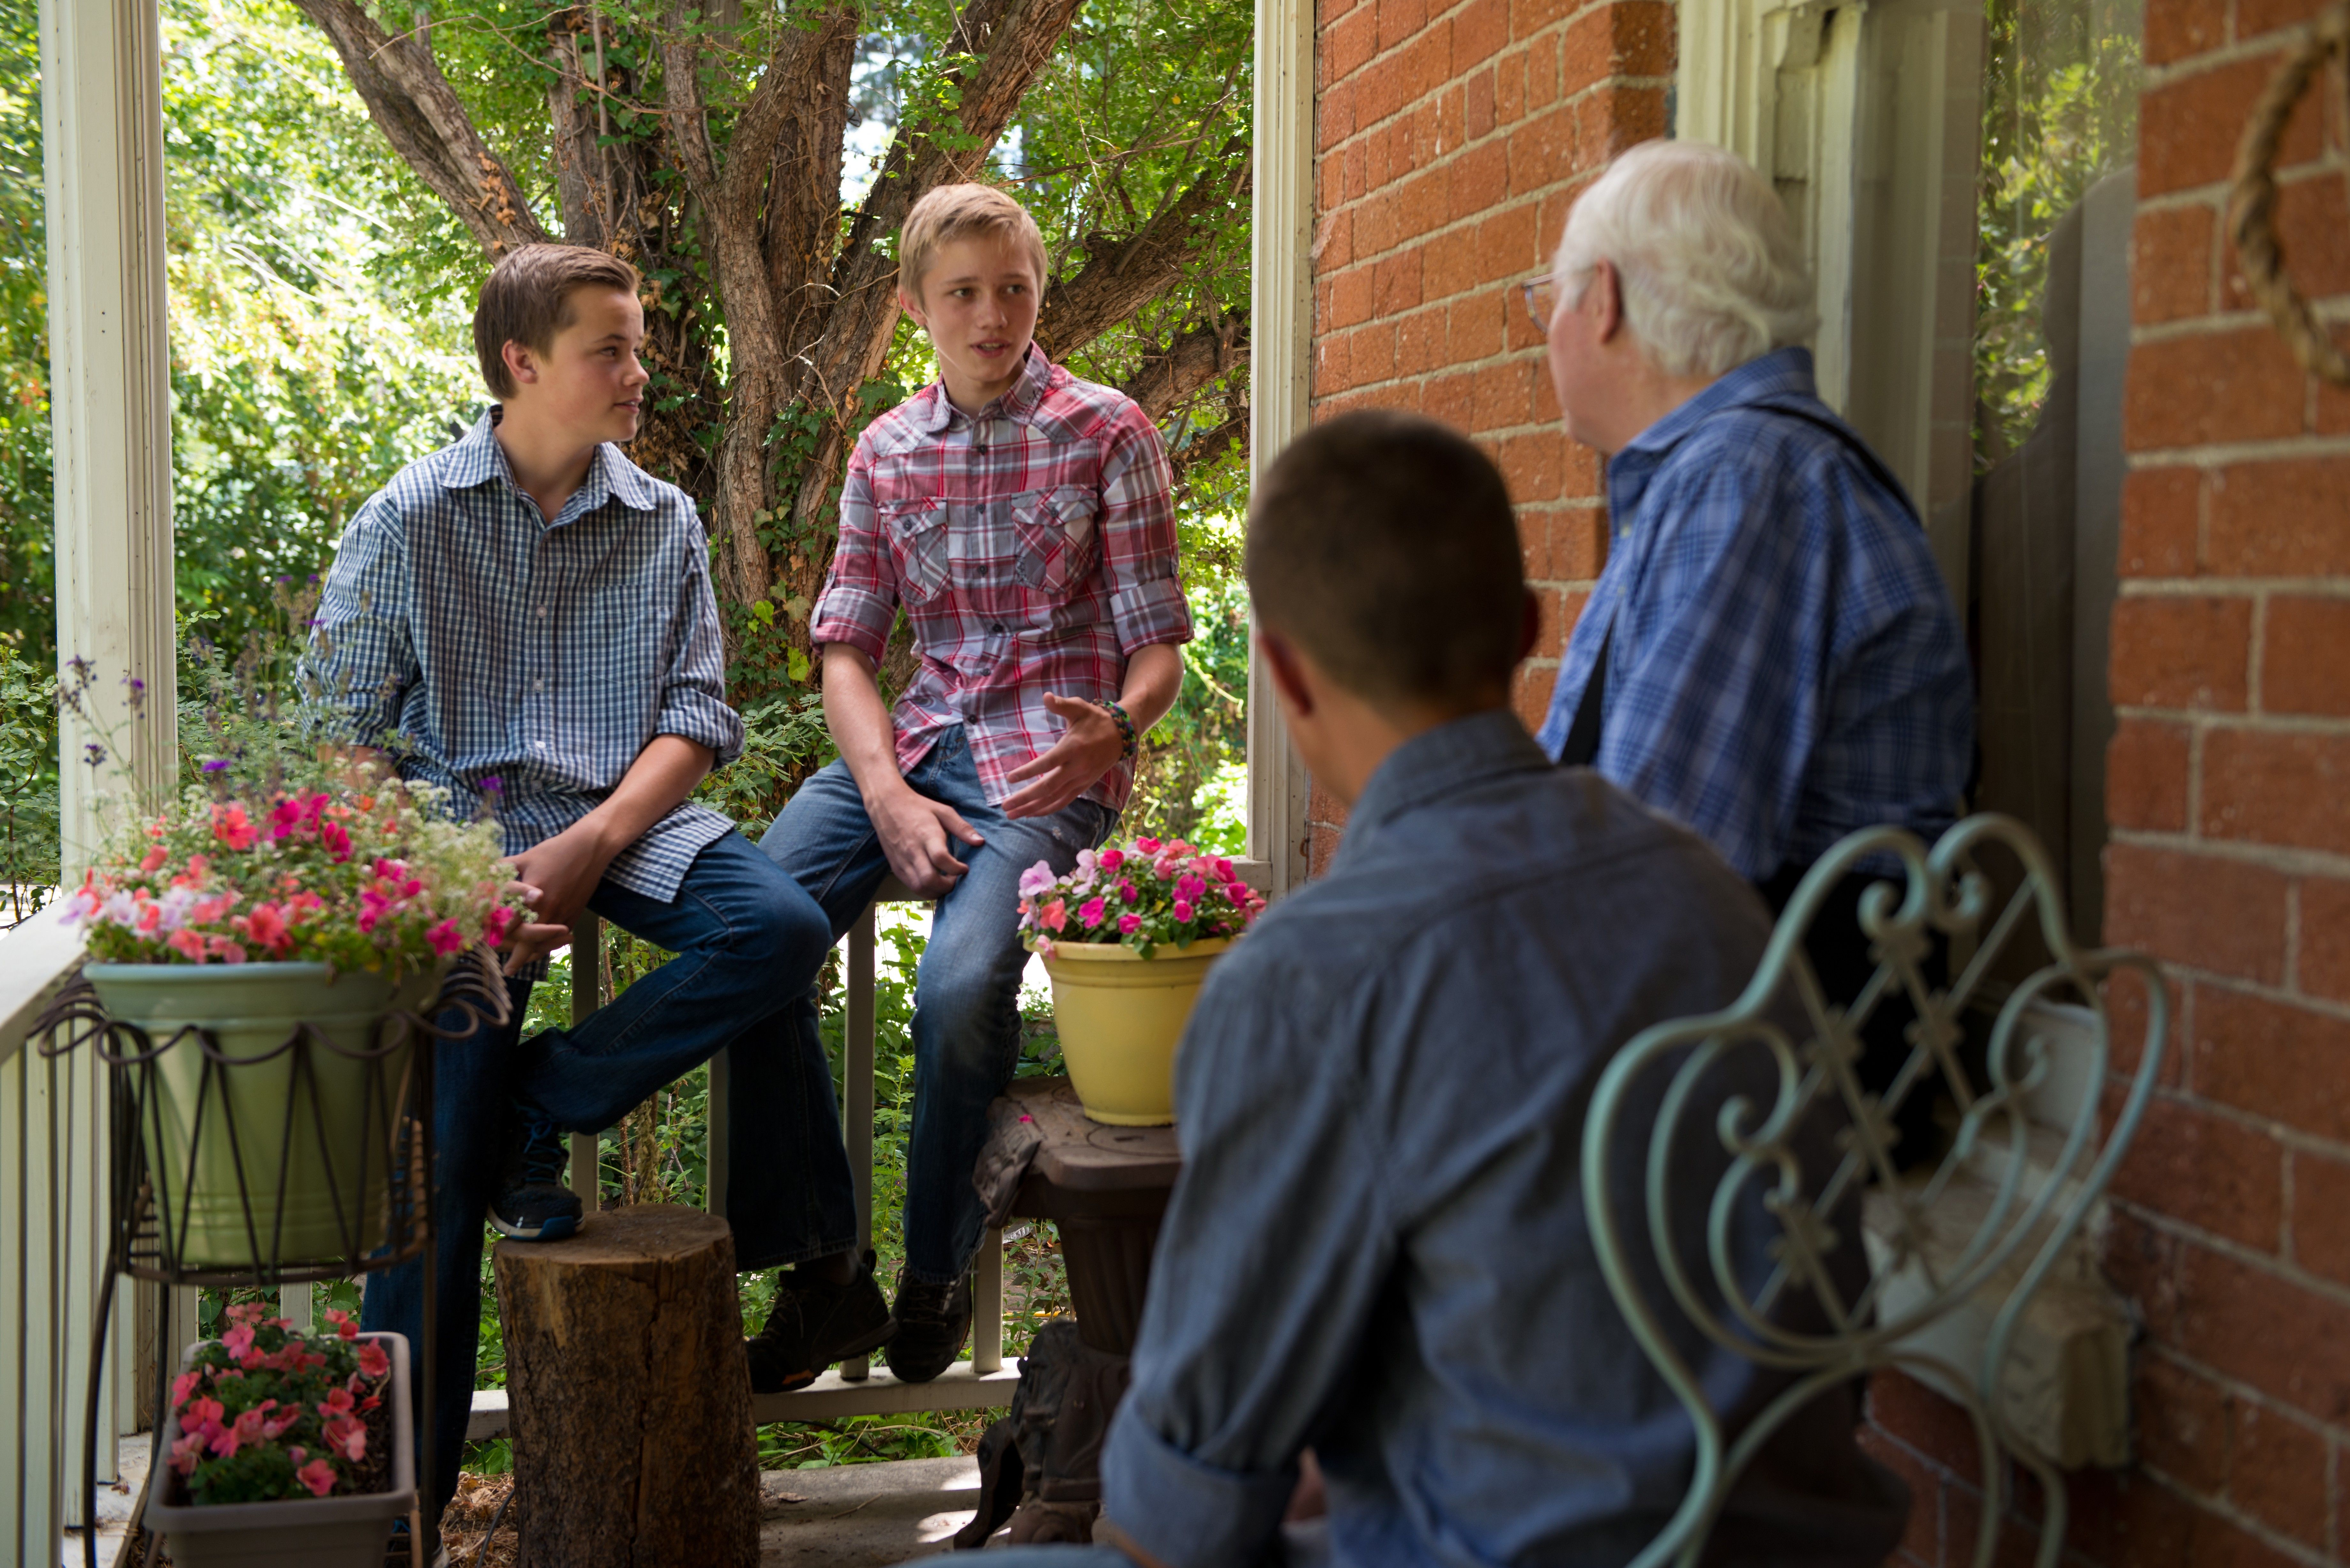 Three young men sit on a porch with an elderly man and talk with him.